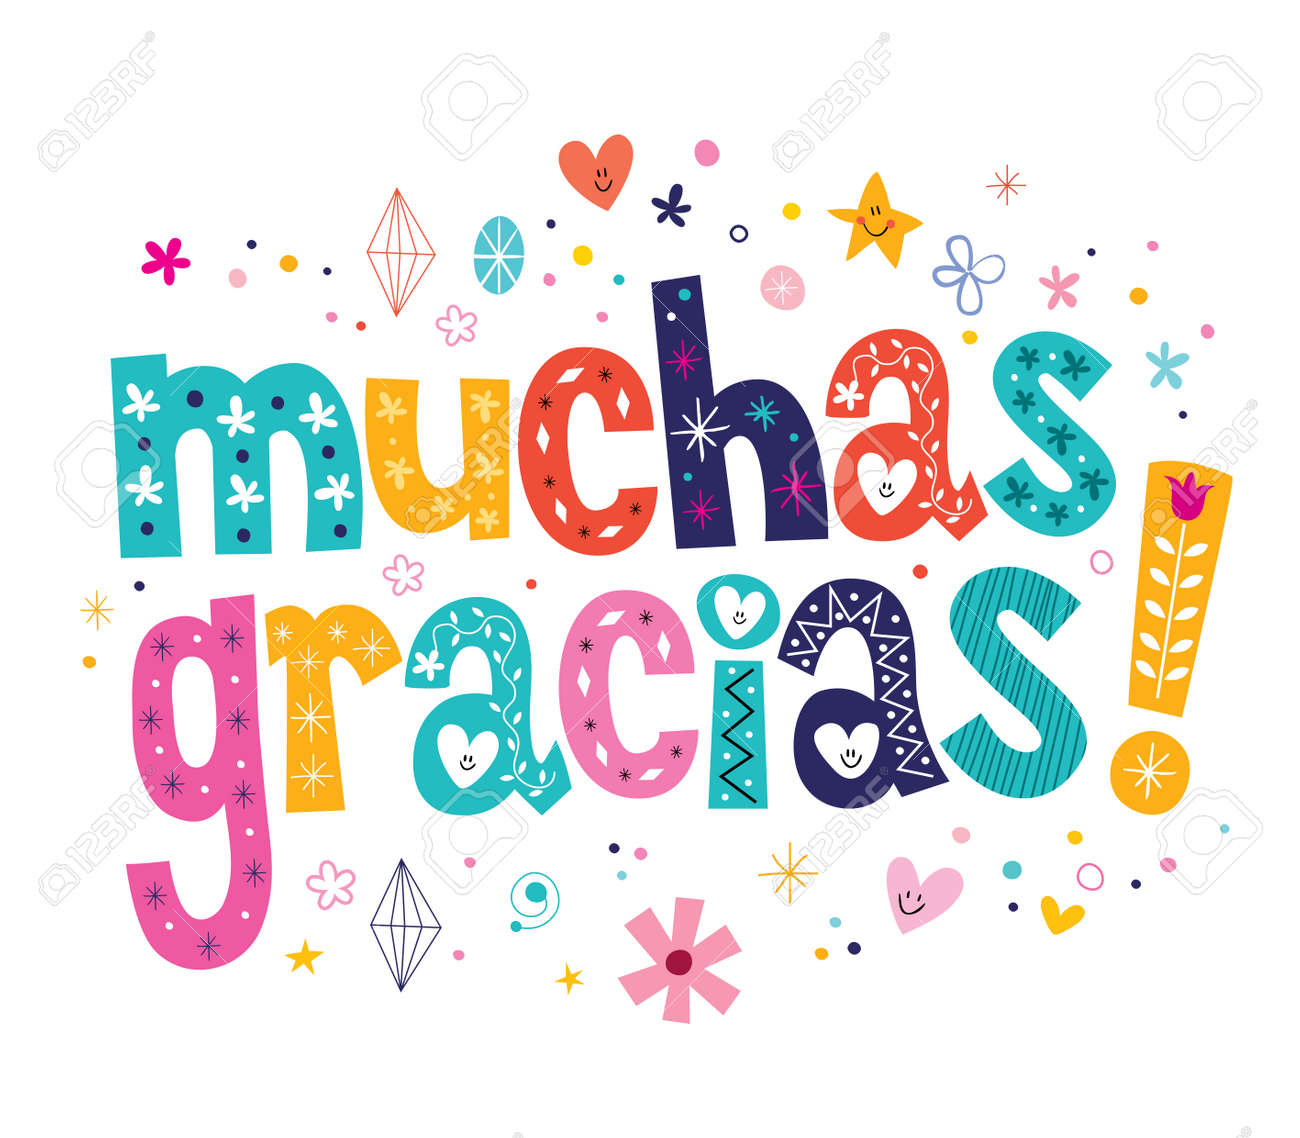 muchas gracias many thanks in Spanish card - 33665783